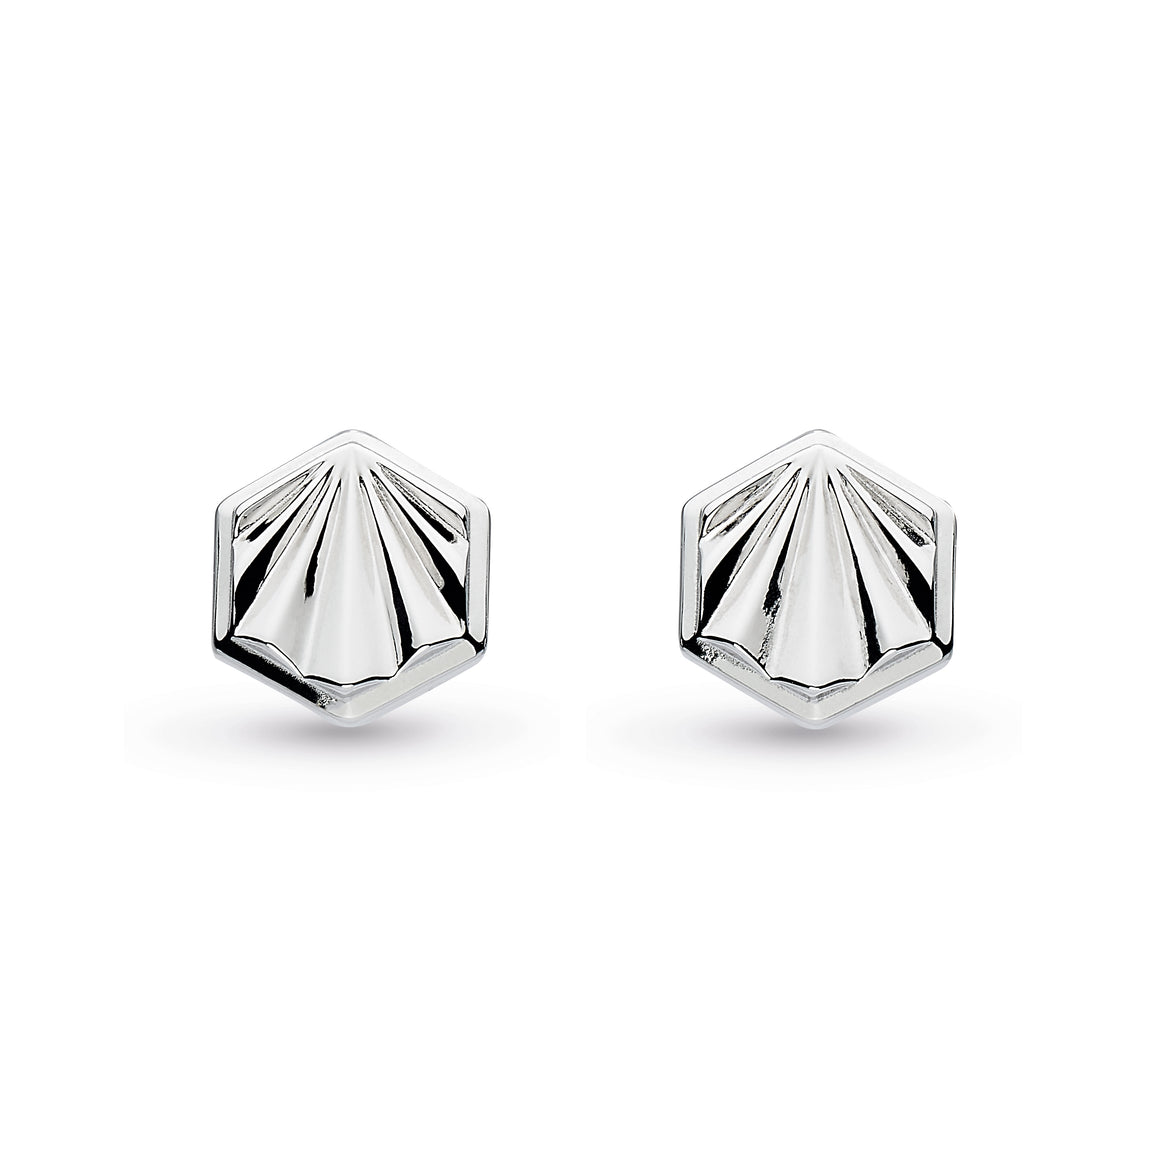 Empire Deco Hexagonal Stud Earrings - 40404rp029